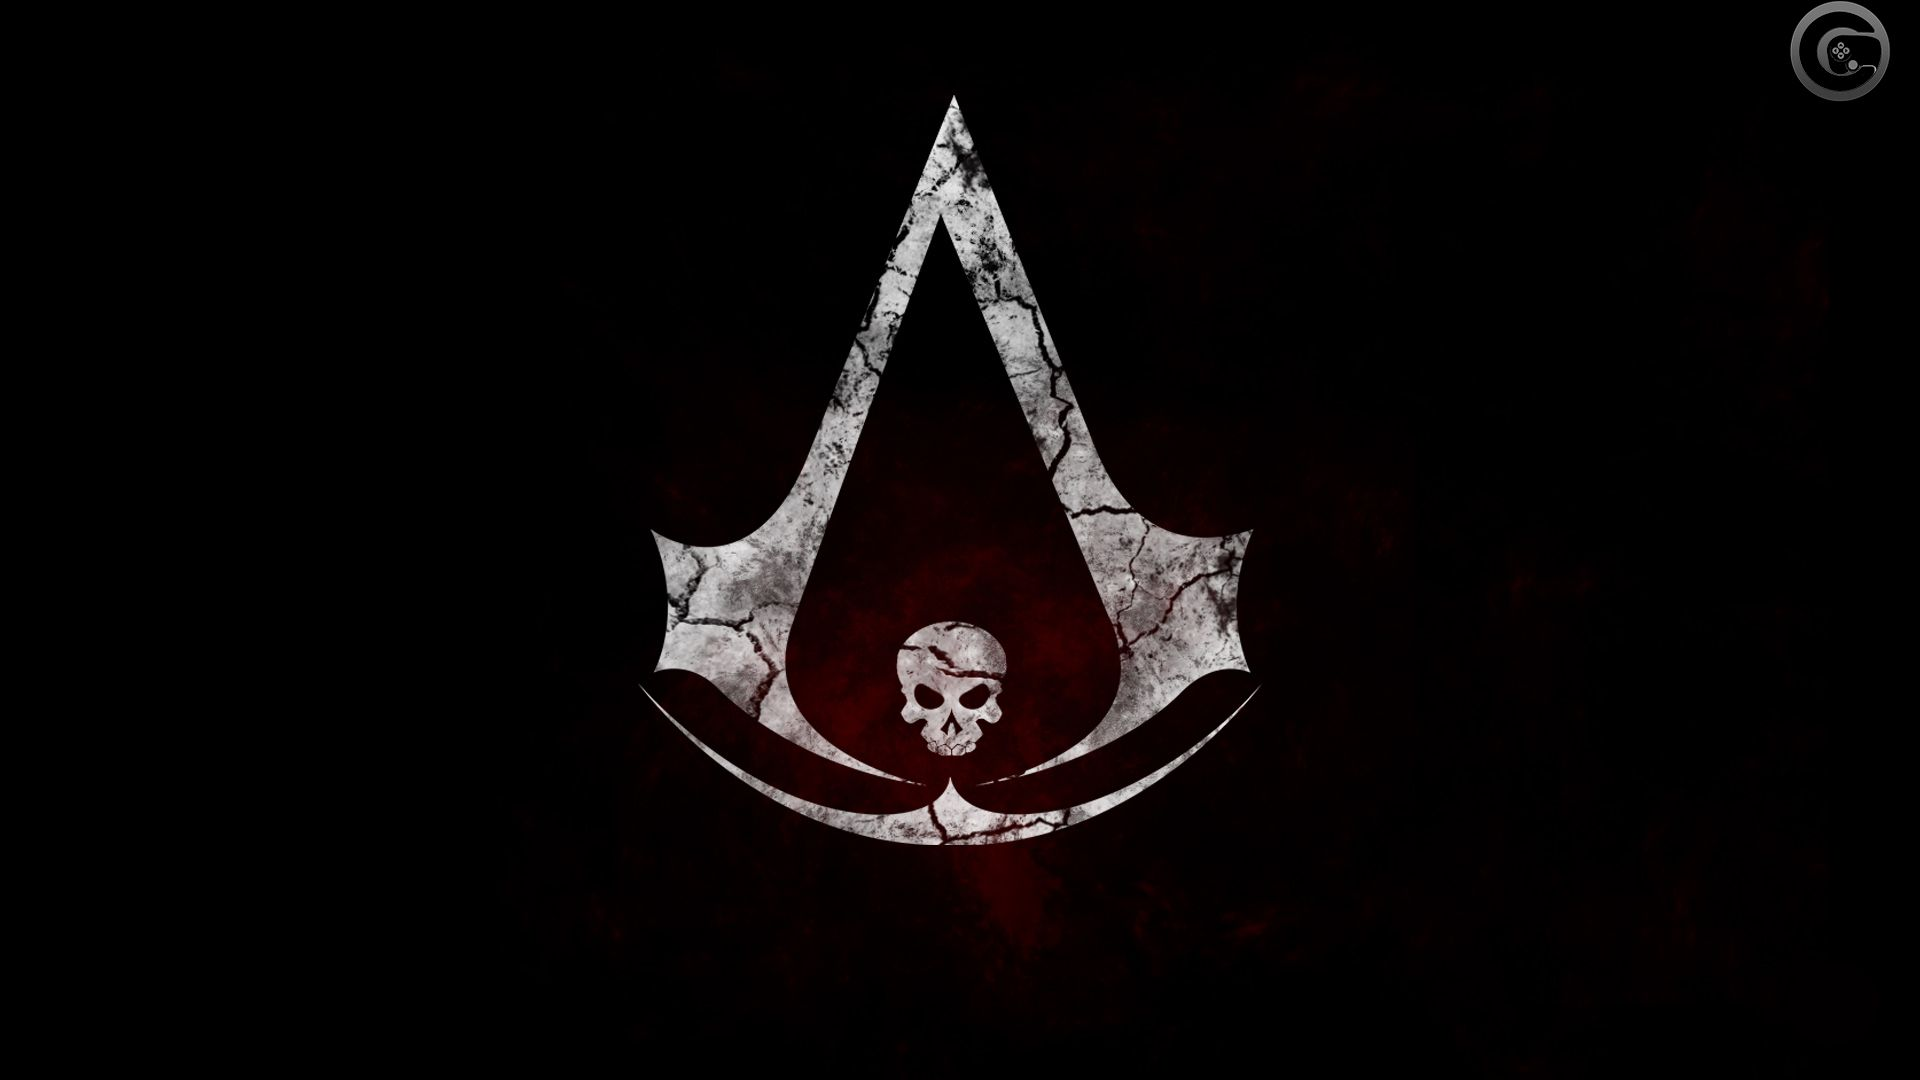 Assassin S Creed Iv Black Flag Hd Wallpapers Assassins Creed